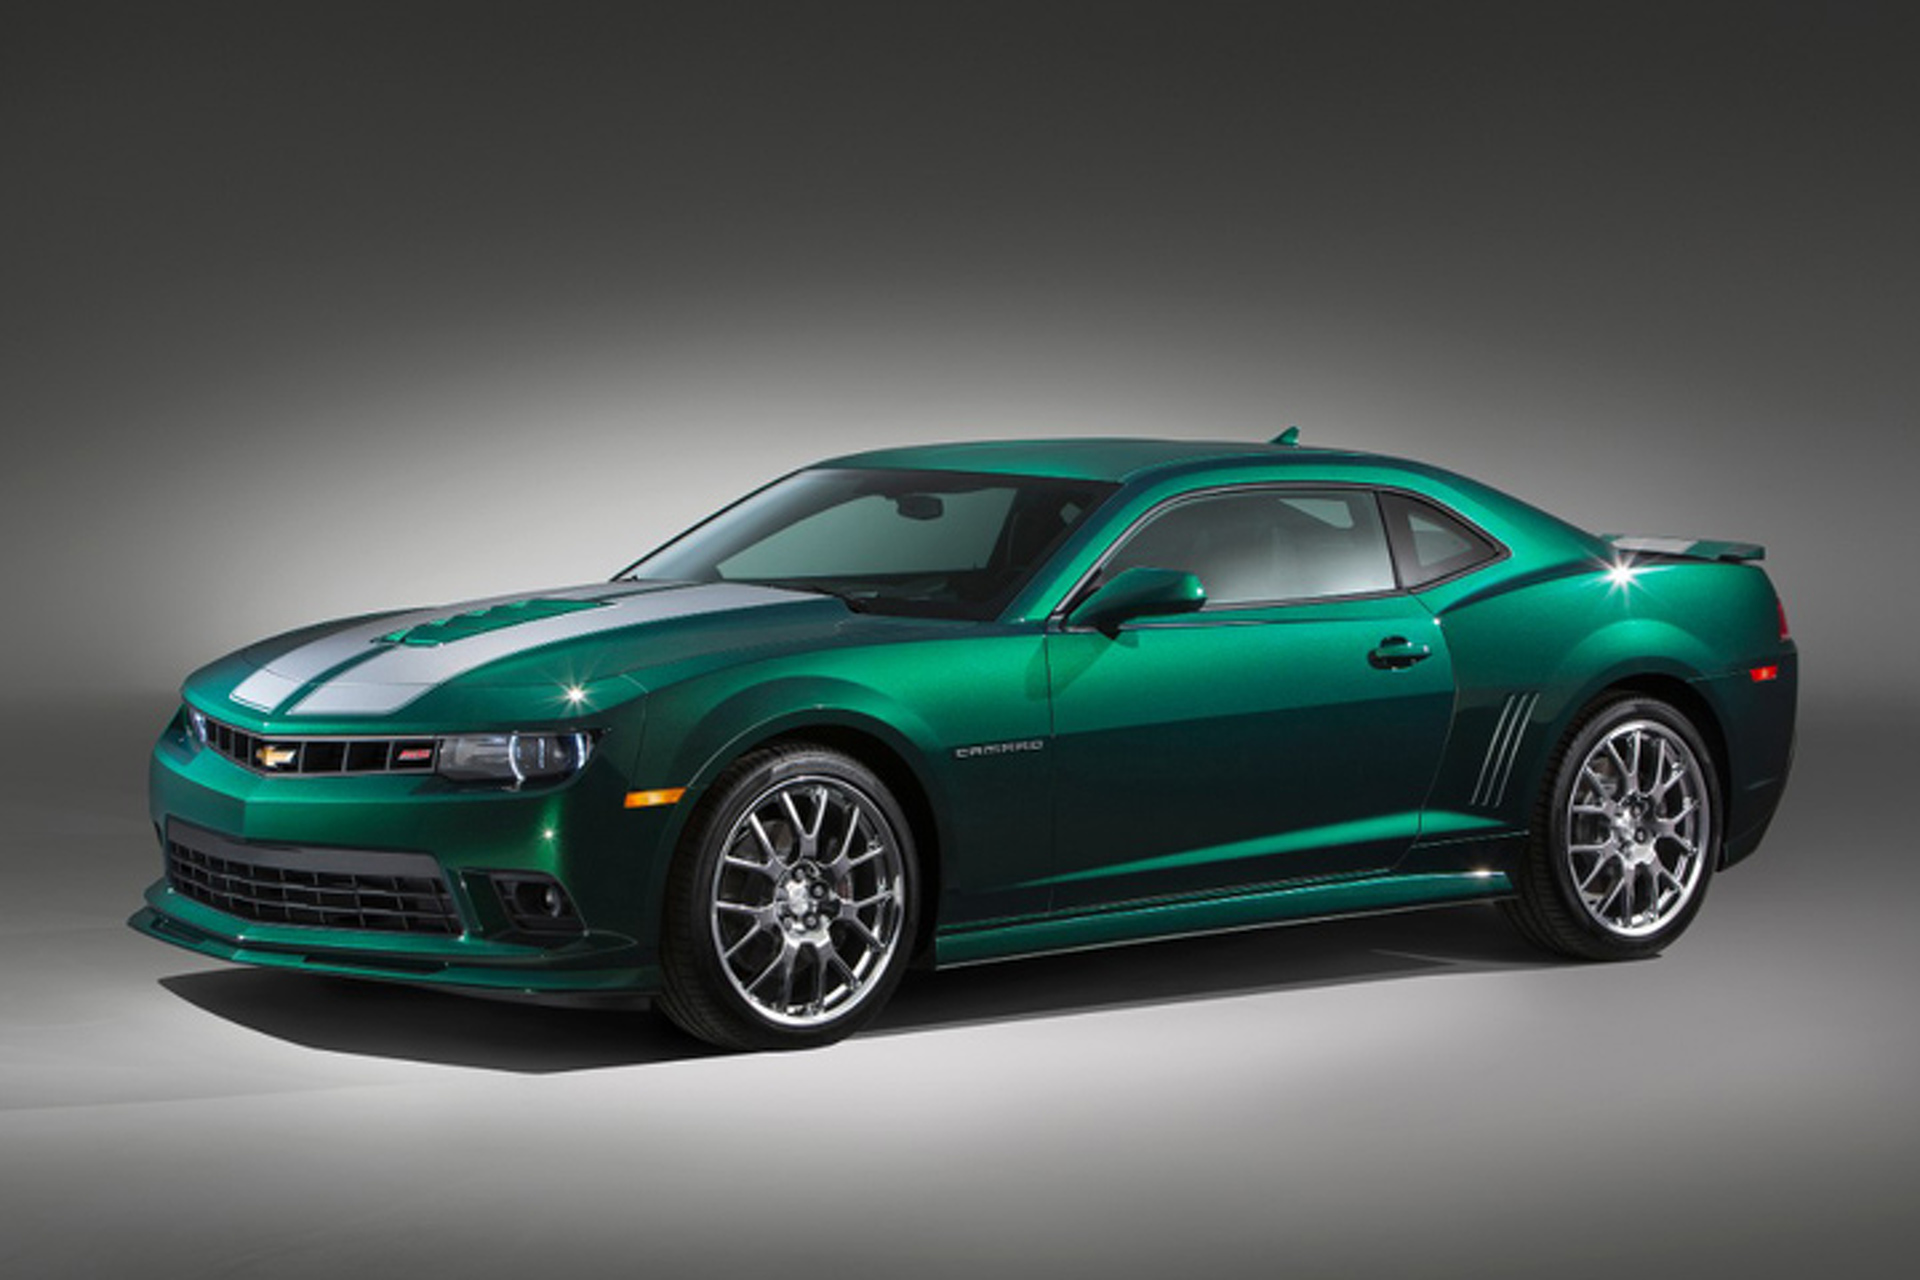 Chevrolet Wants YOU to Name this Camaro